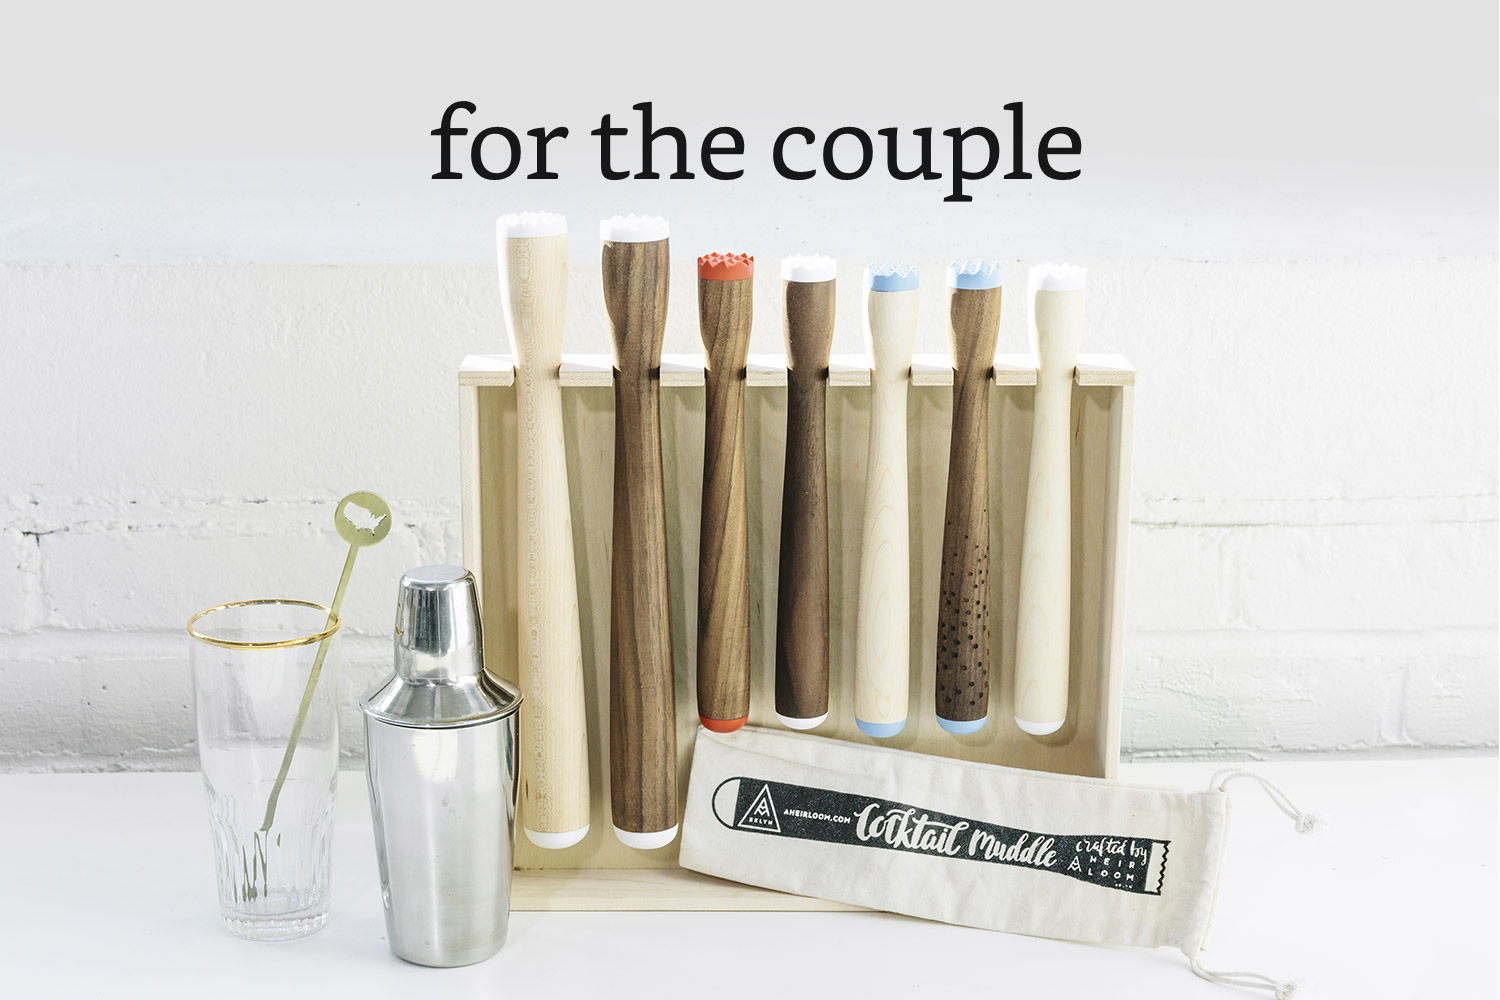 Handmade Gifts for the Couple